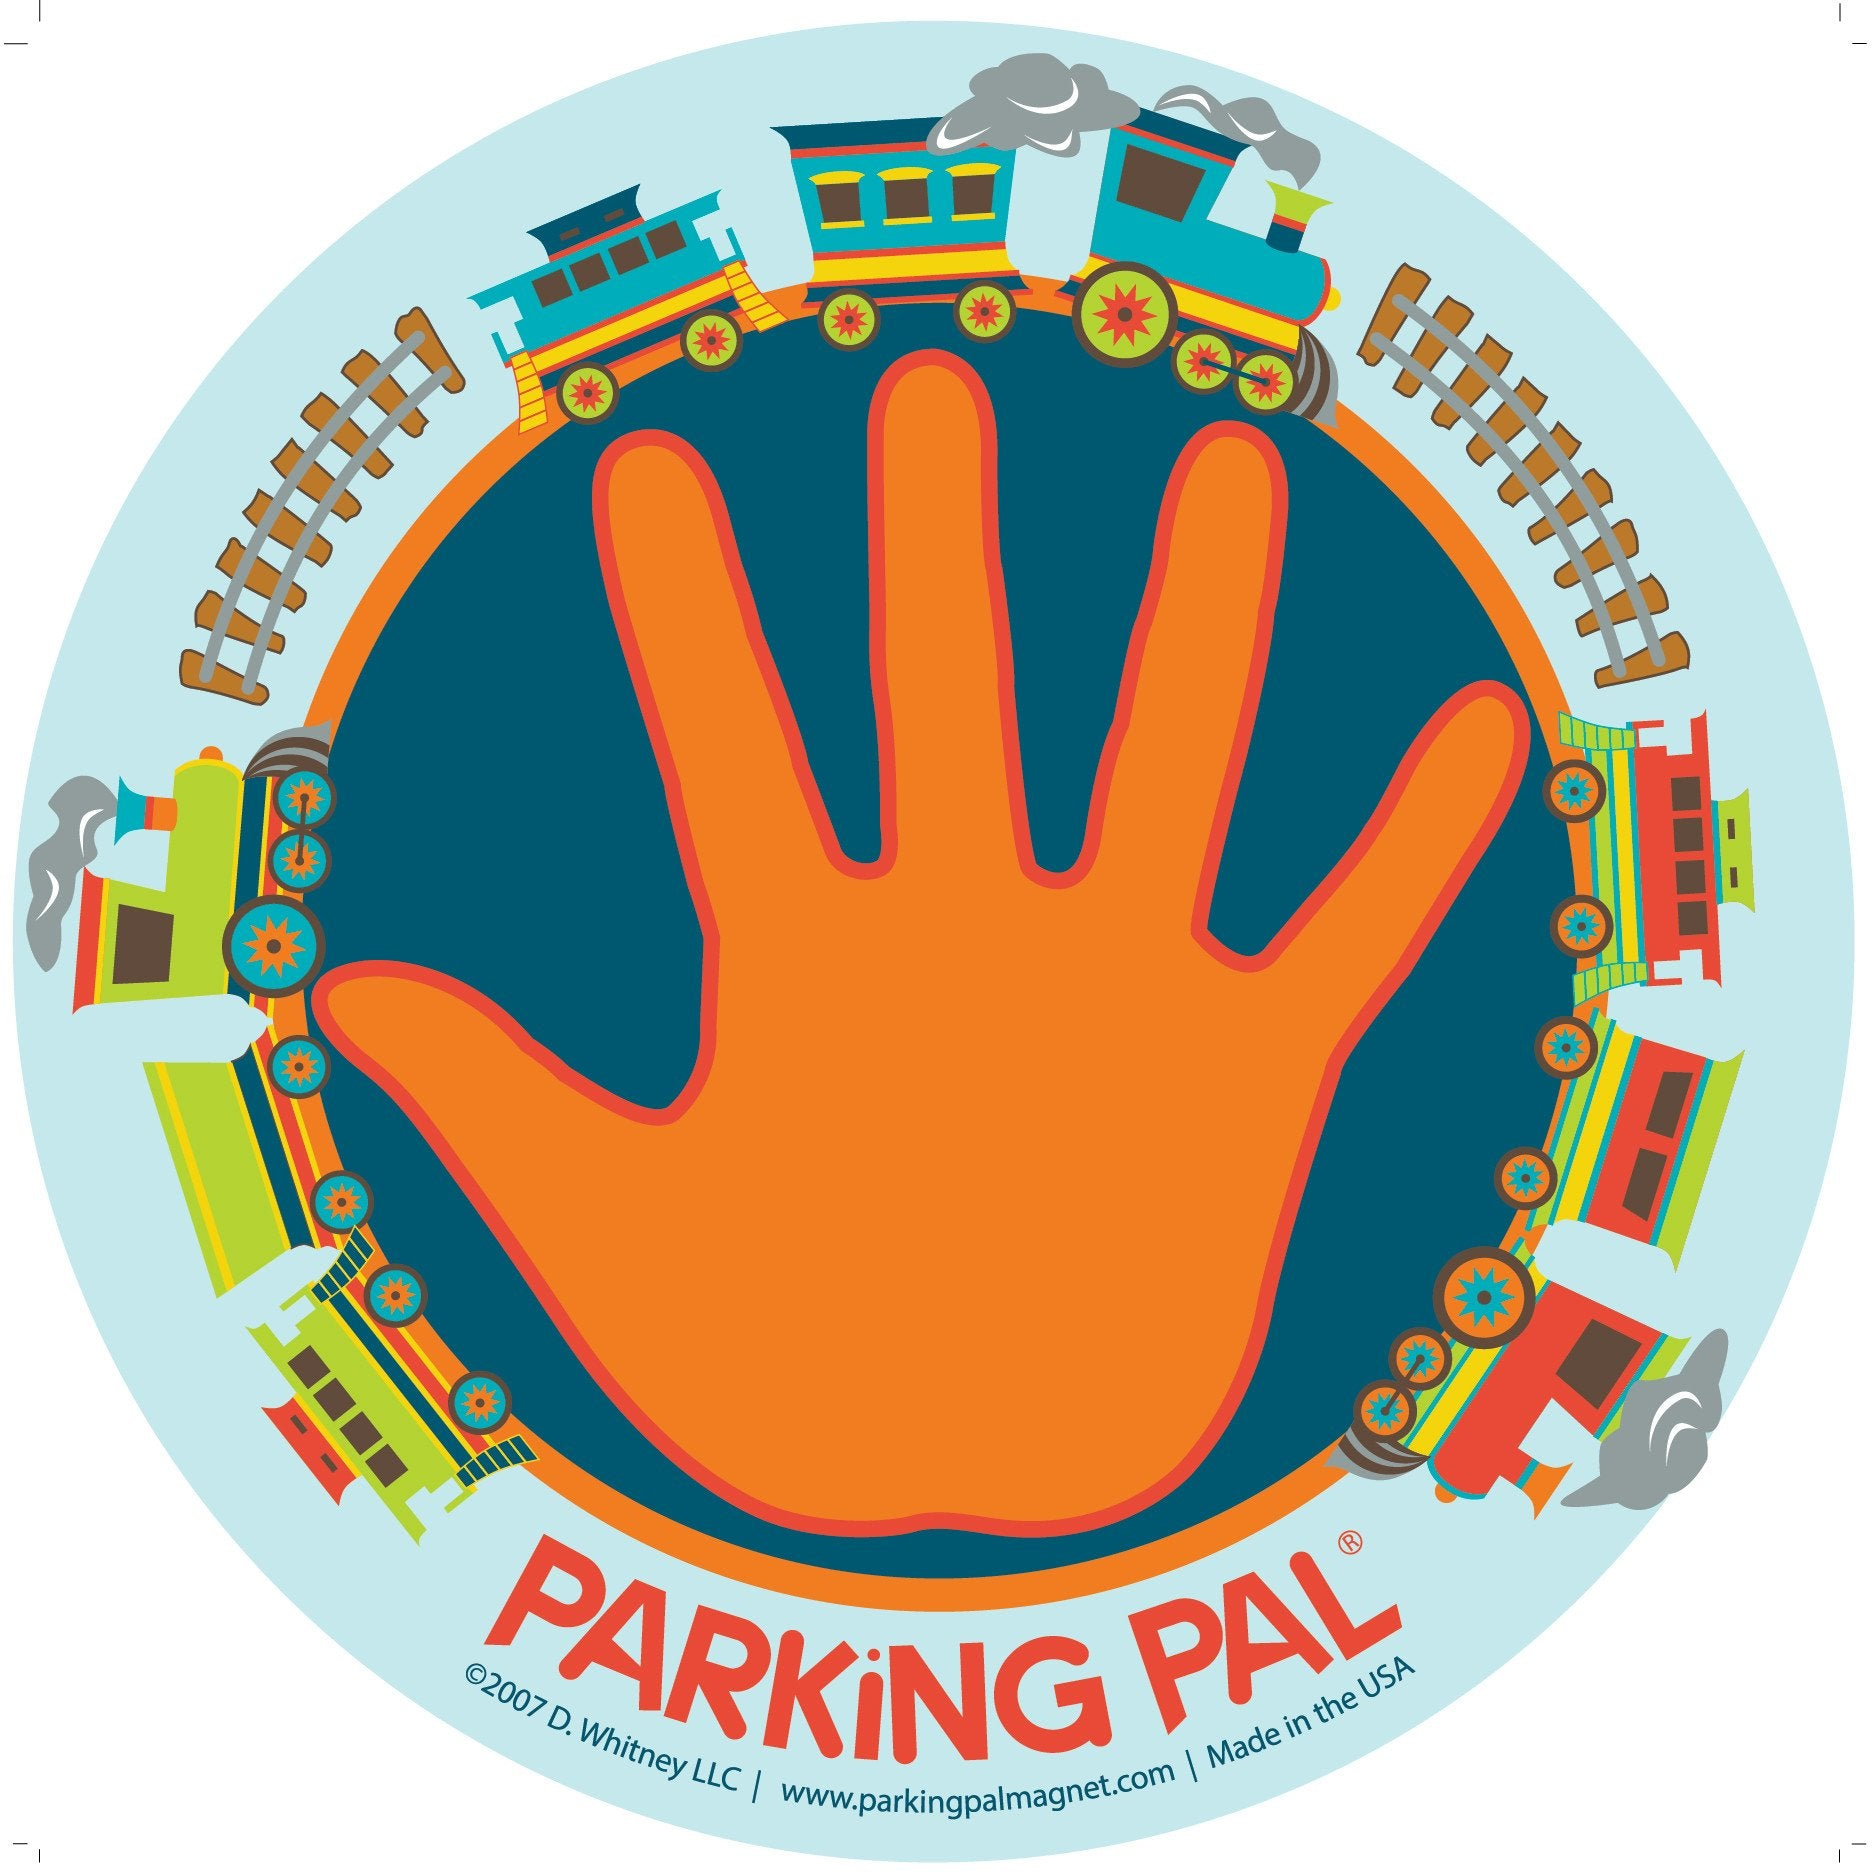 parking pal car safety magnet with trains and hand palm print